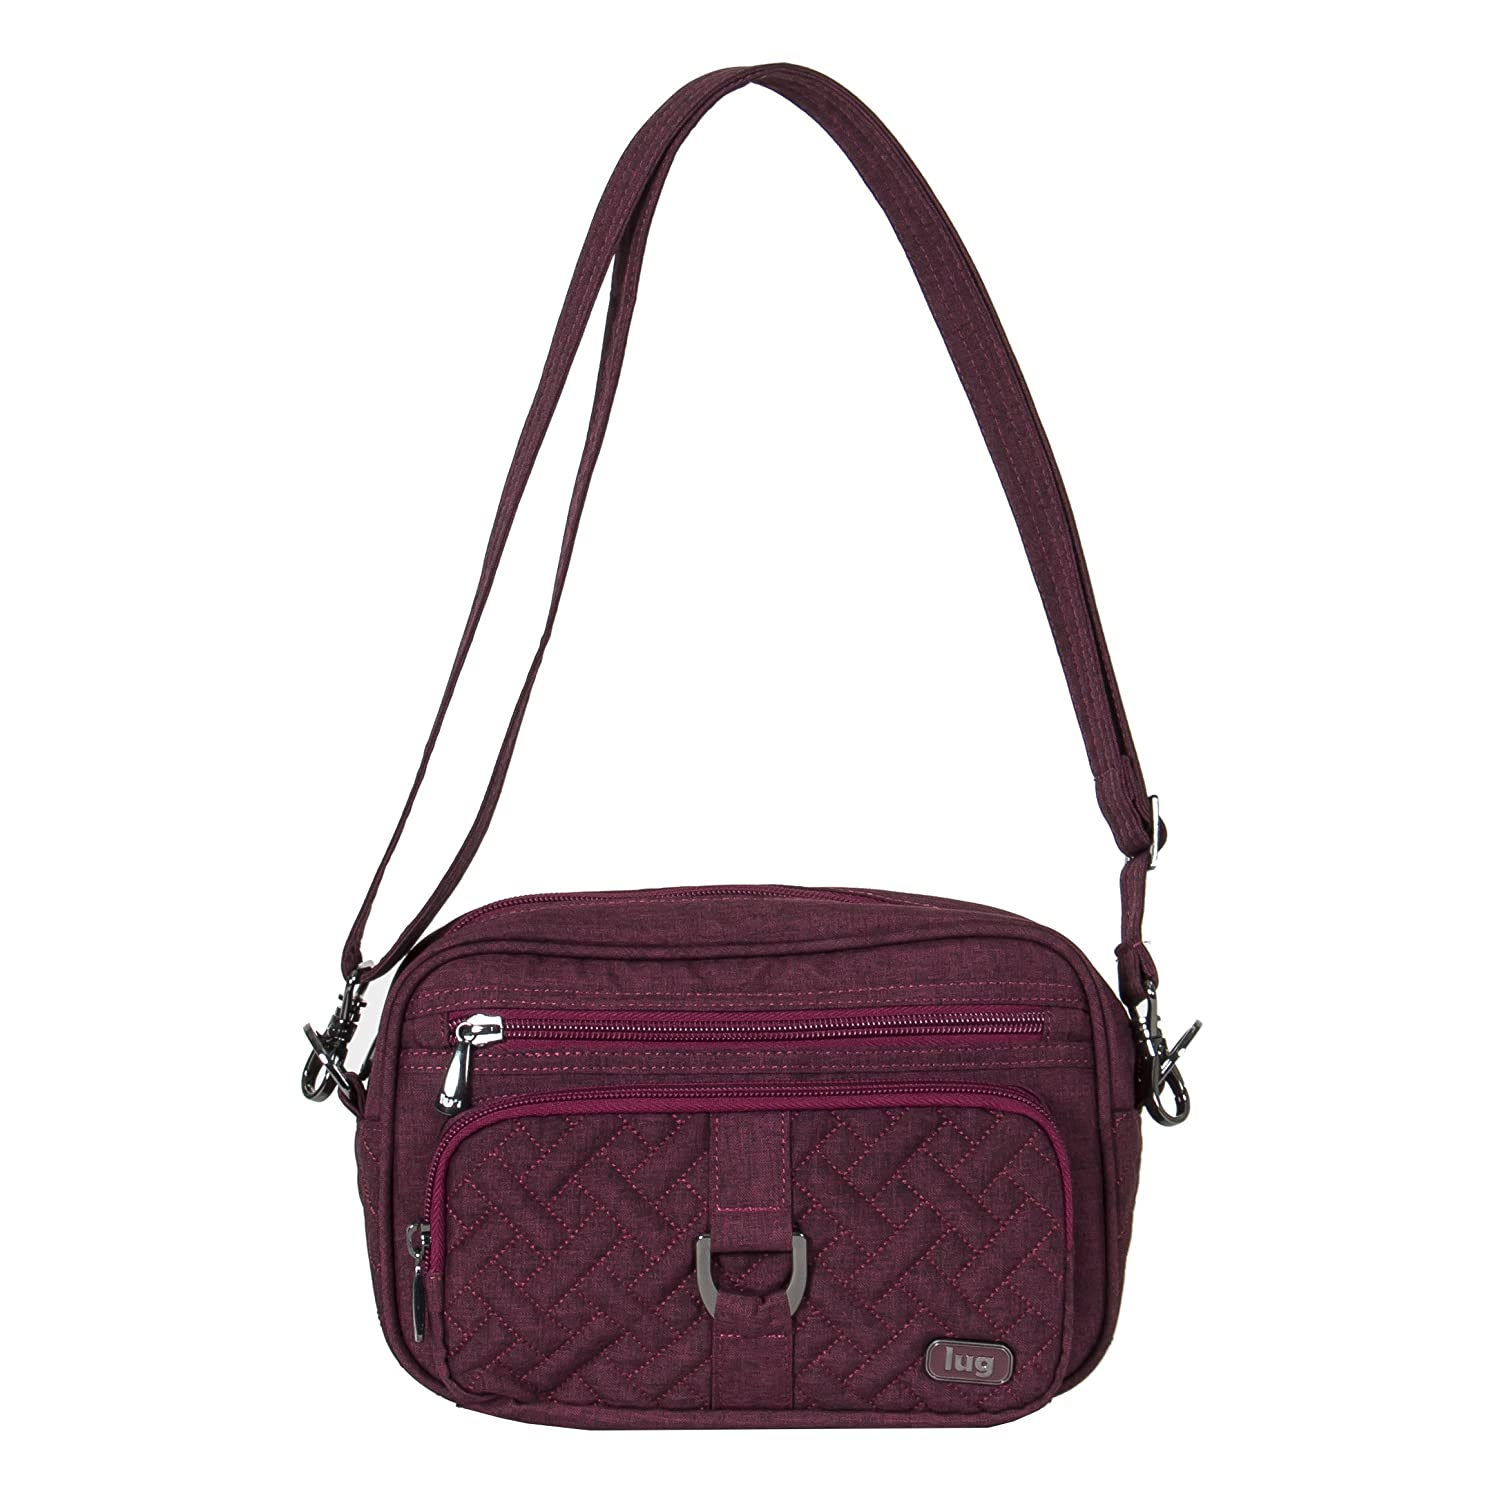 0de8acaba Amazon.com: Lug Women's Crossbody Cross Body Bag HEATHER CRANBER One Size